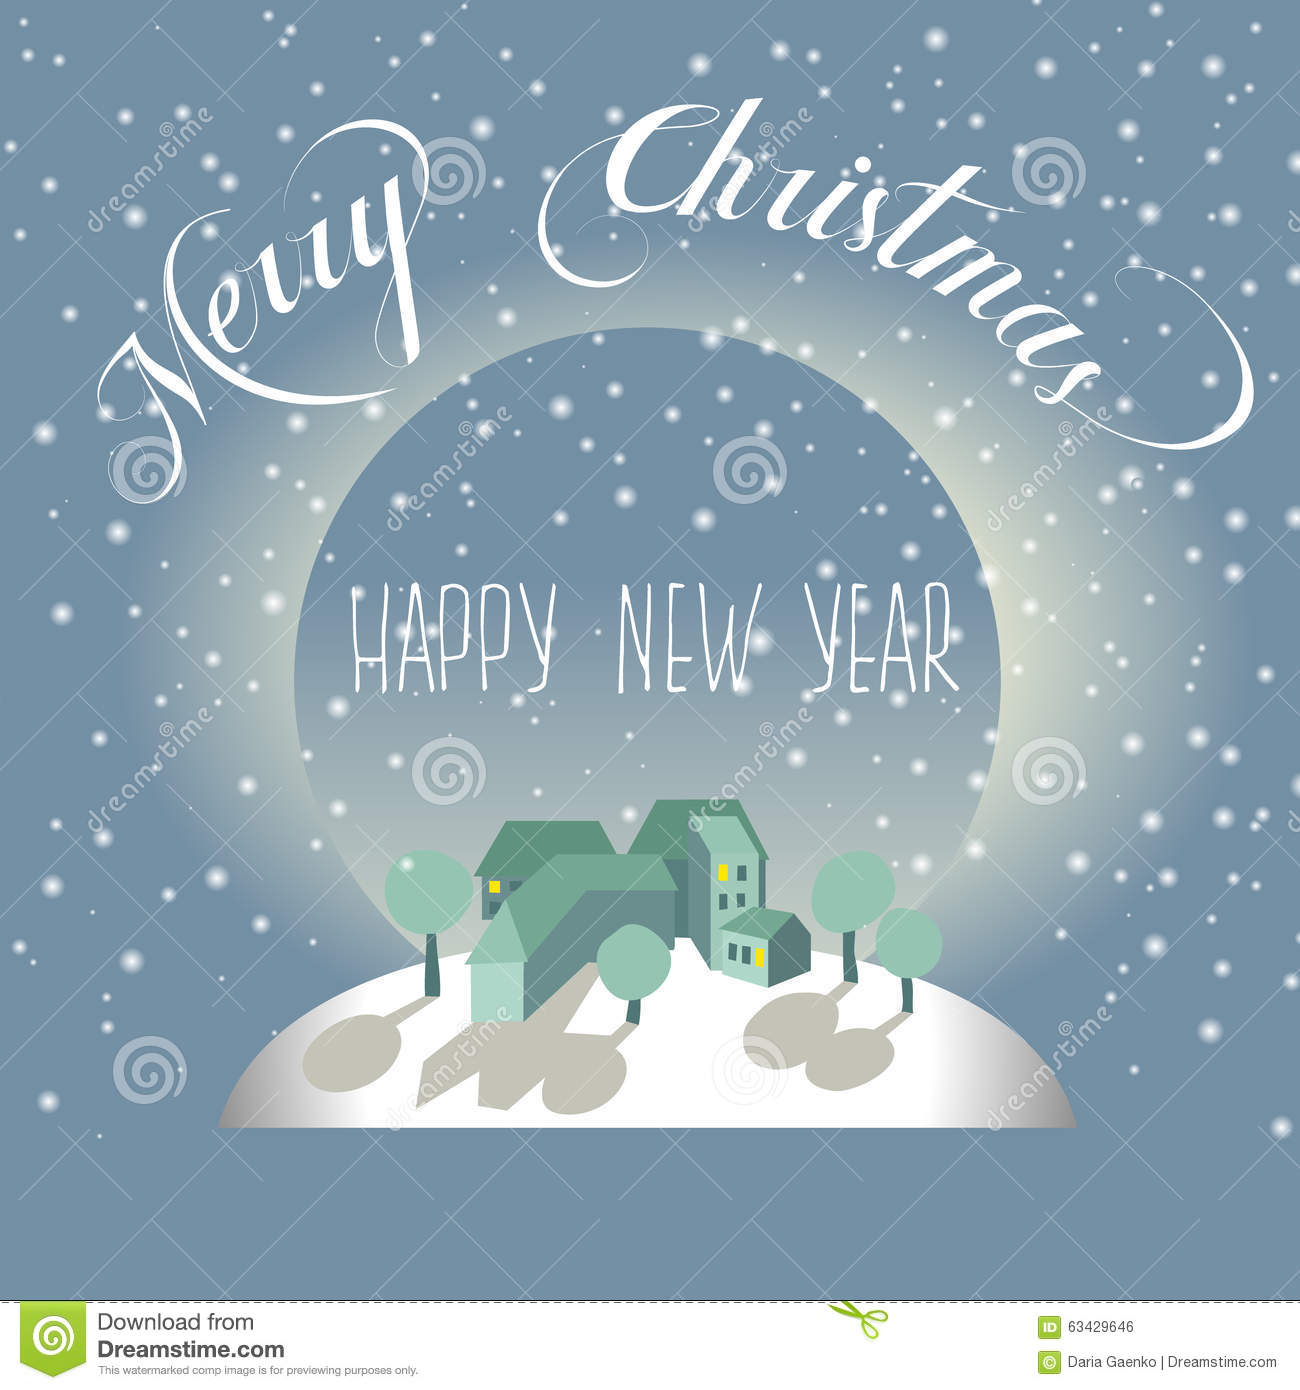 Merry Christmas And Happy New Year Postcard Stock Illustration ...